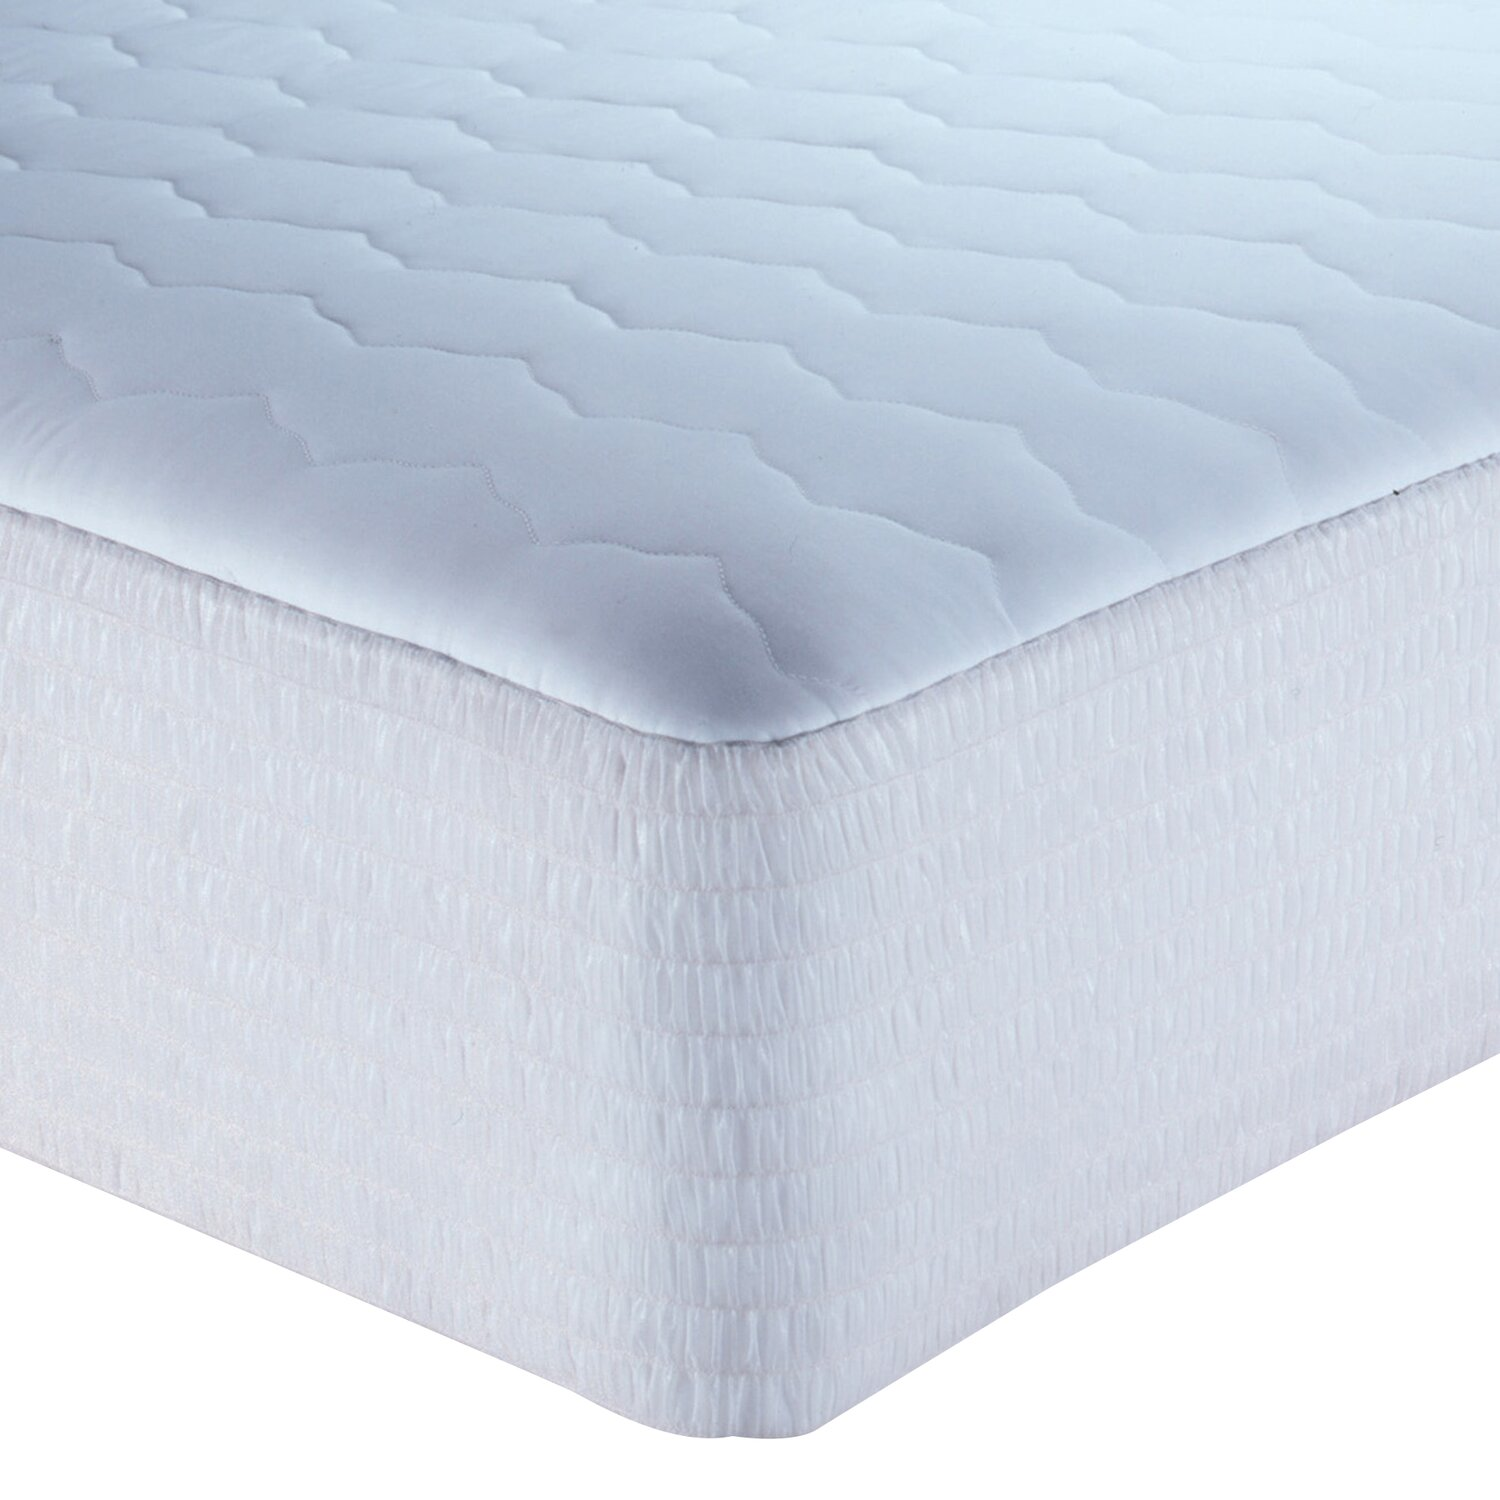 King size mattress pad king size waterbed mattress pad for Comfort inn mattress brand